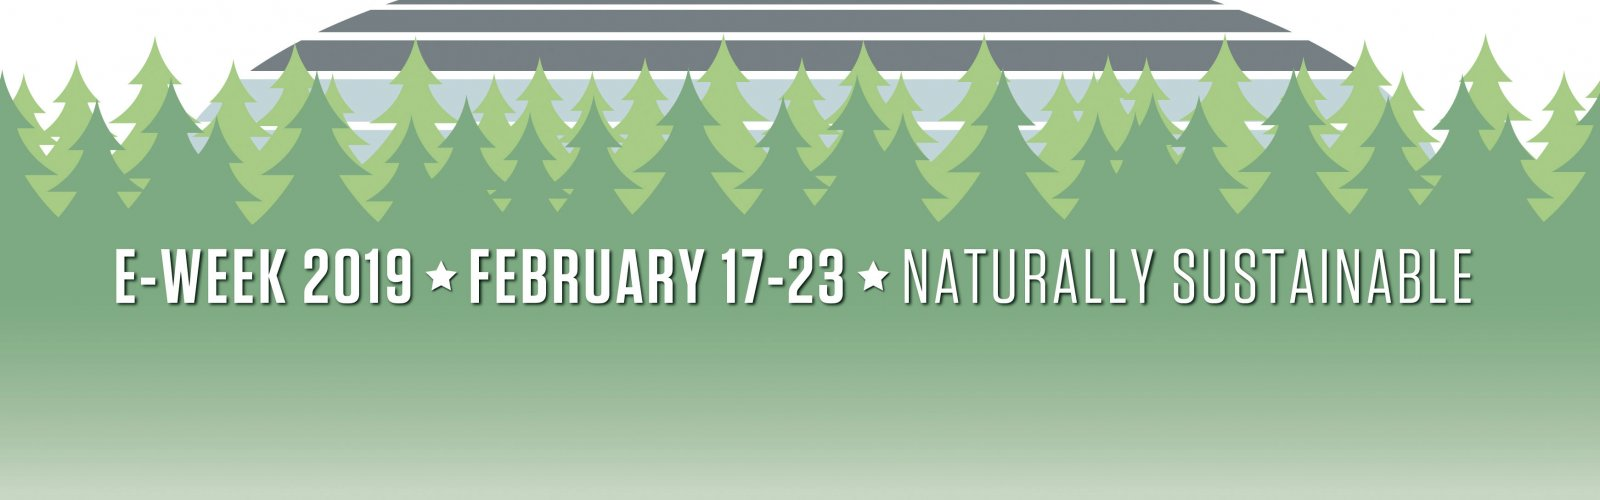 E-Week 2019, February 17-23, Naturally Sustainable